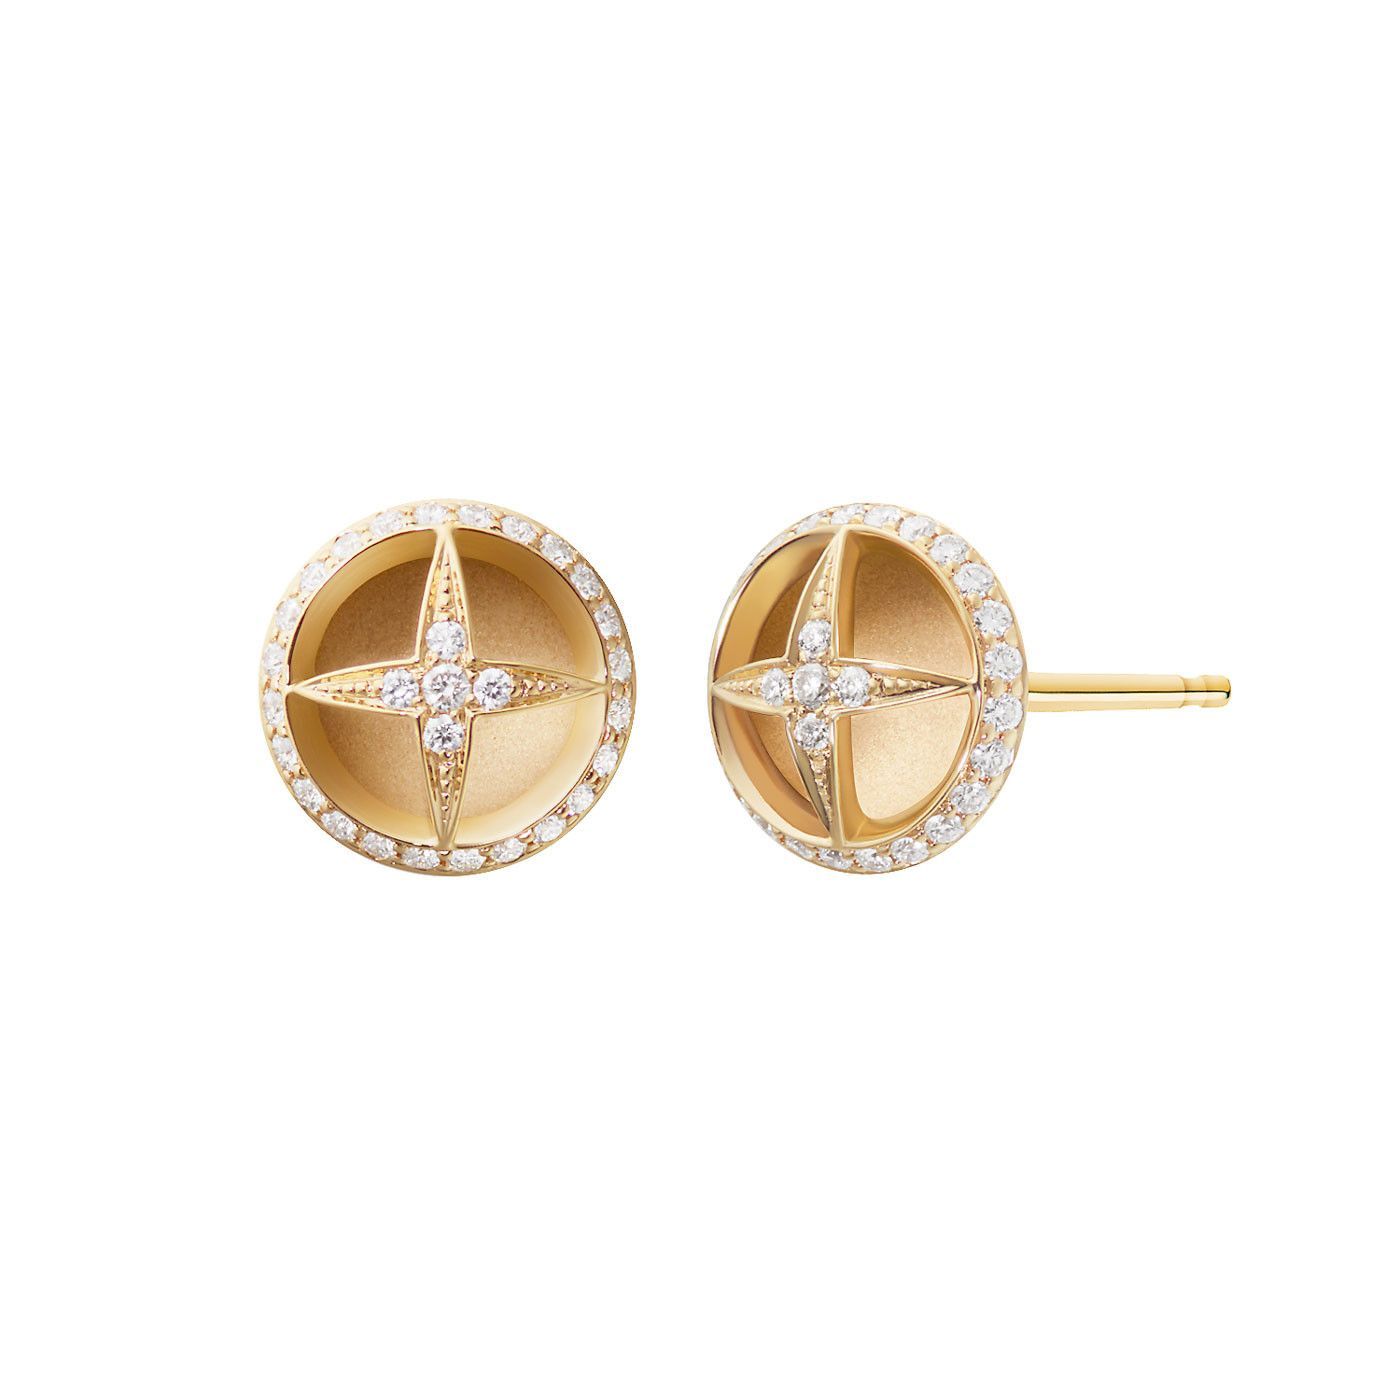 Melissakayejewelry laila earring in k yellow gold with